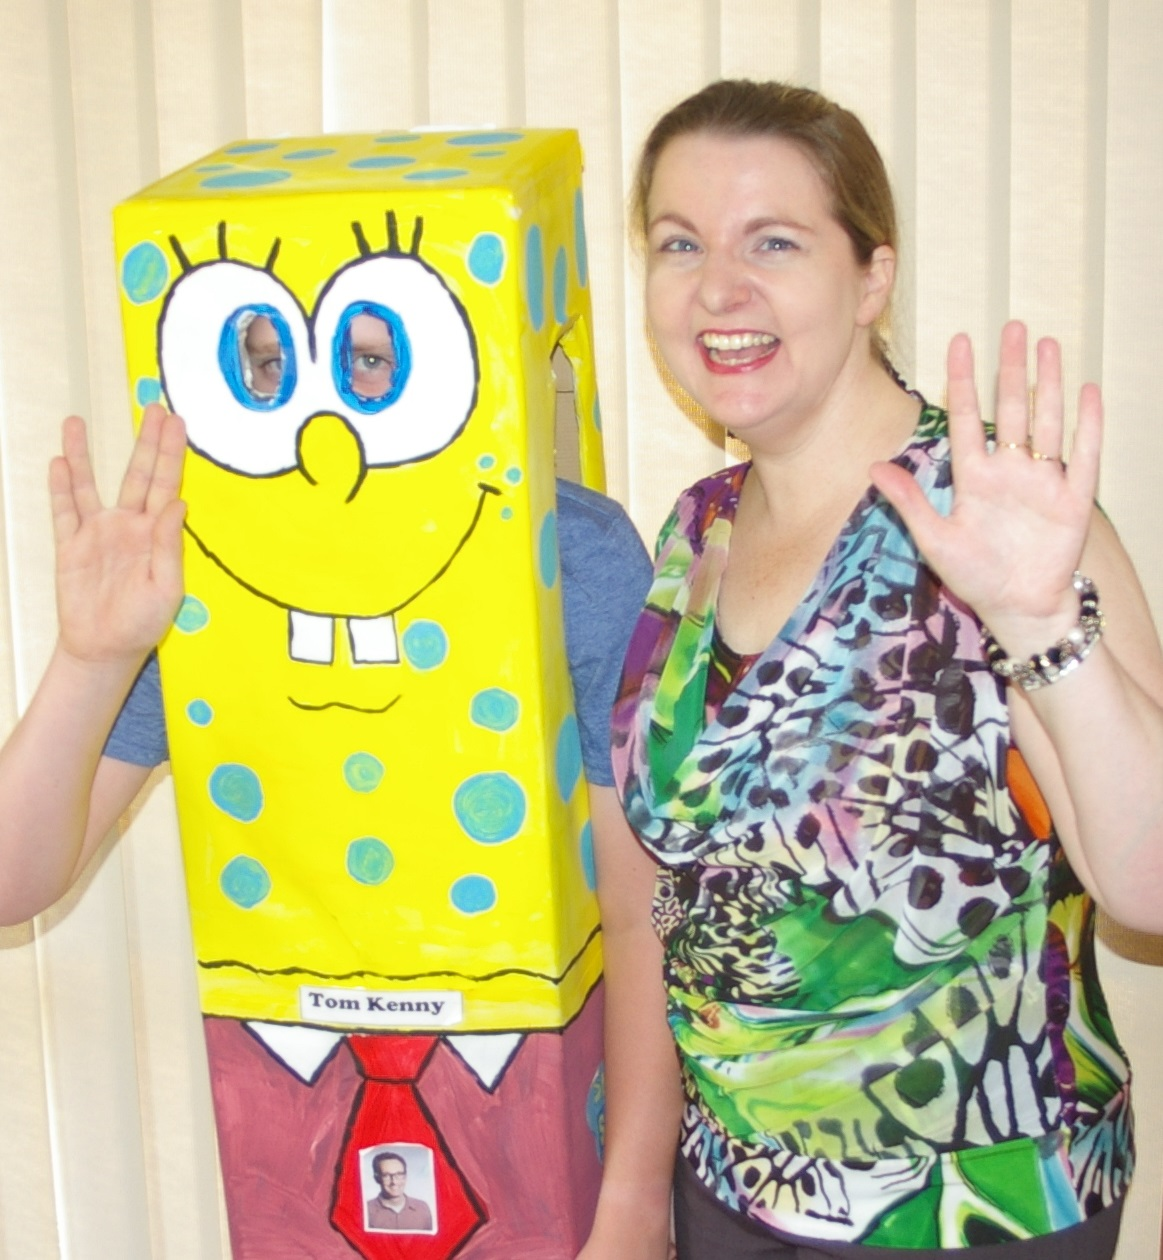 Cherie Curtis with SpongeBob SquarePants